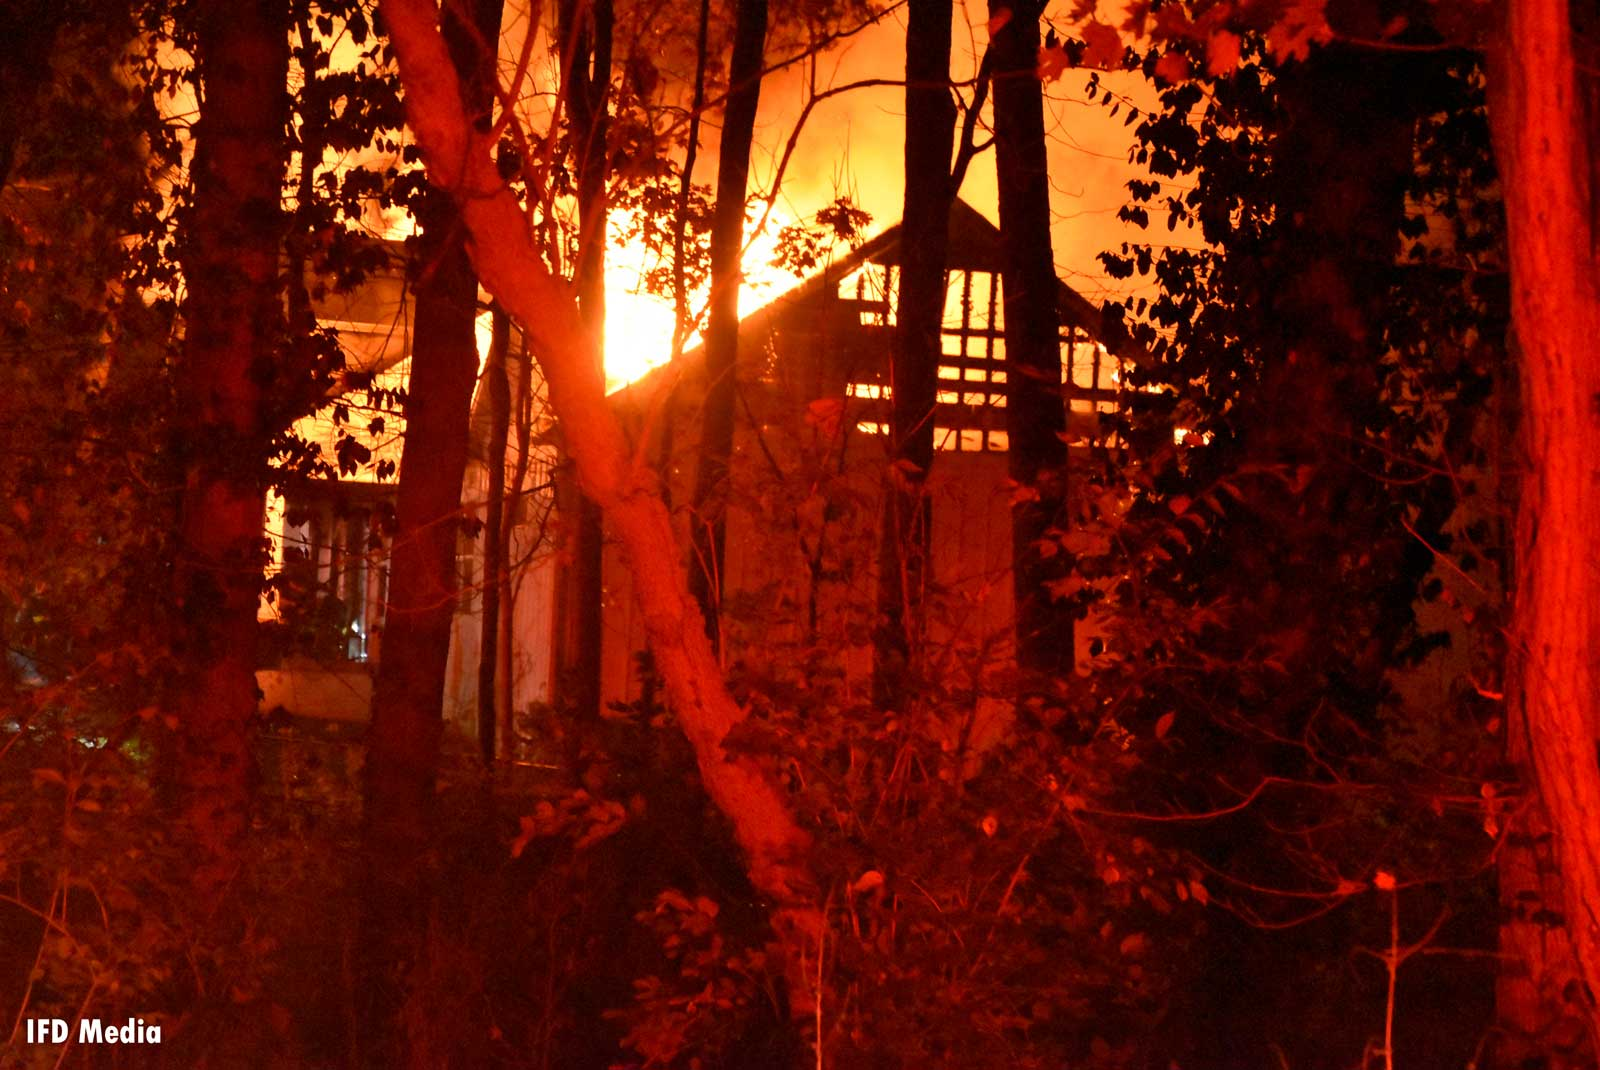 Burning home glimpsed through trees